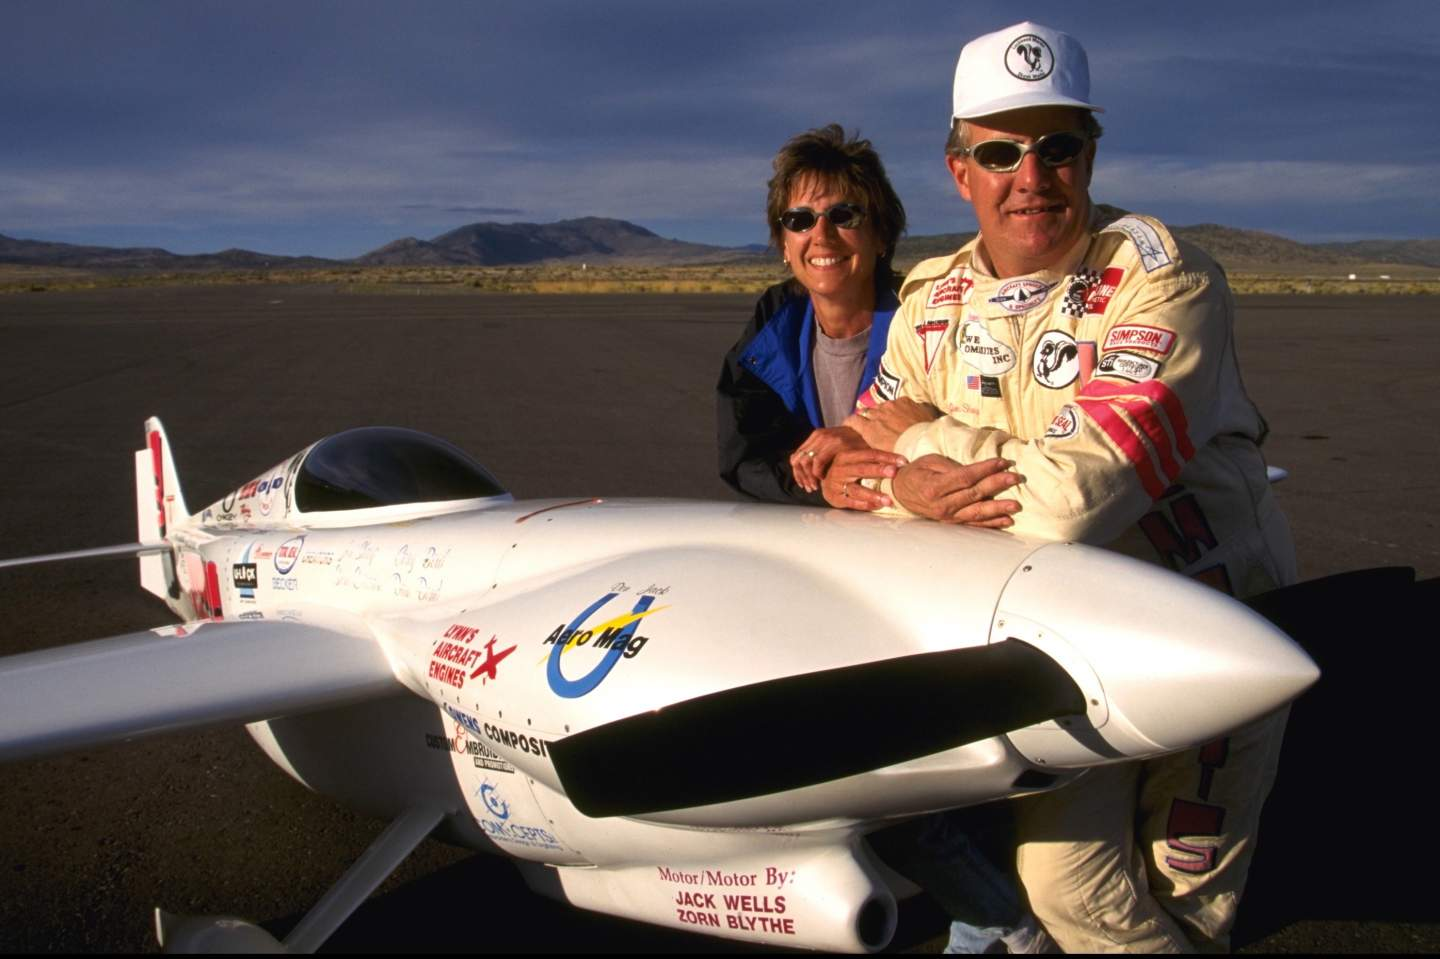 Pilots Jon and Patricia Sharp with their plane